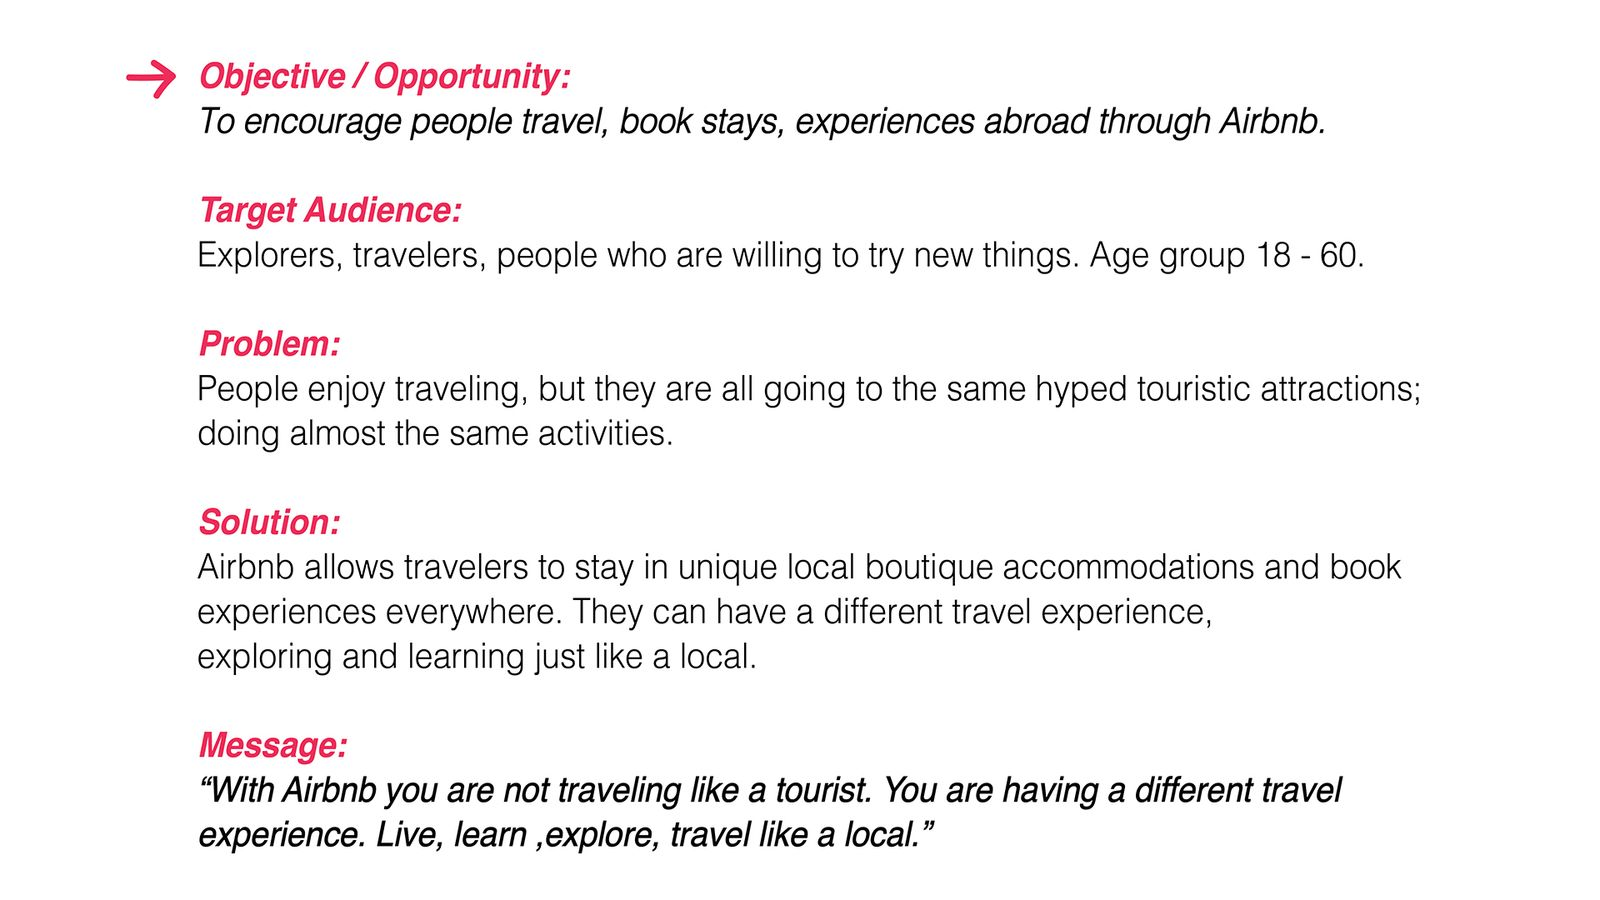 Airbnb - Like a Local